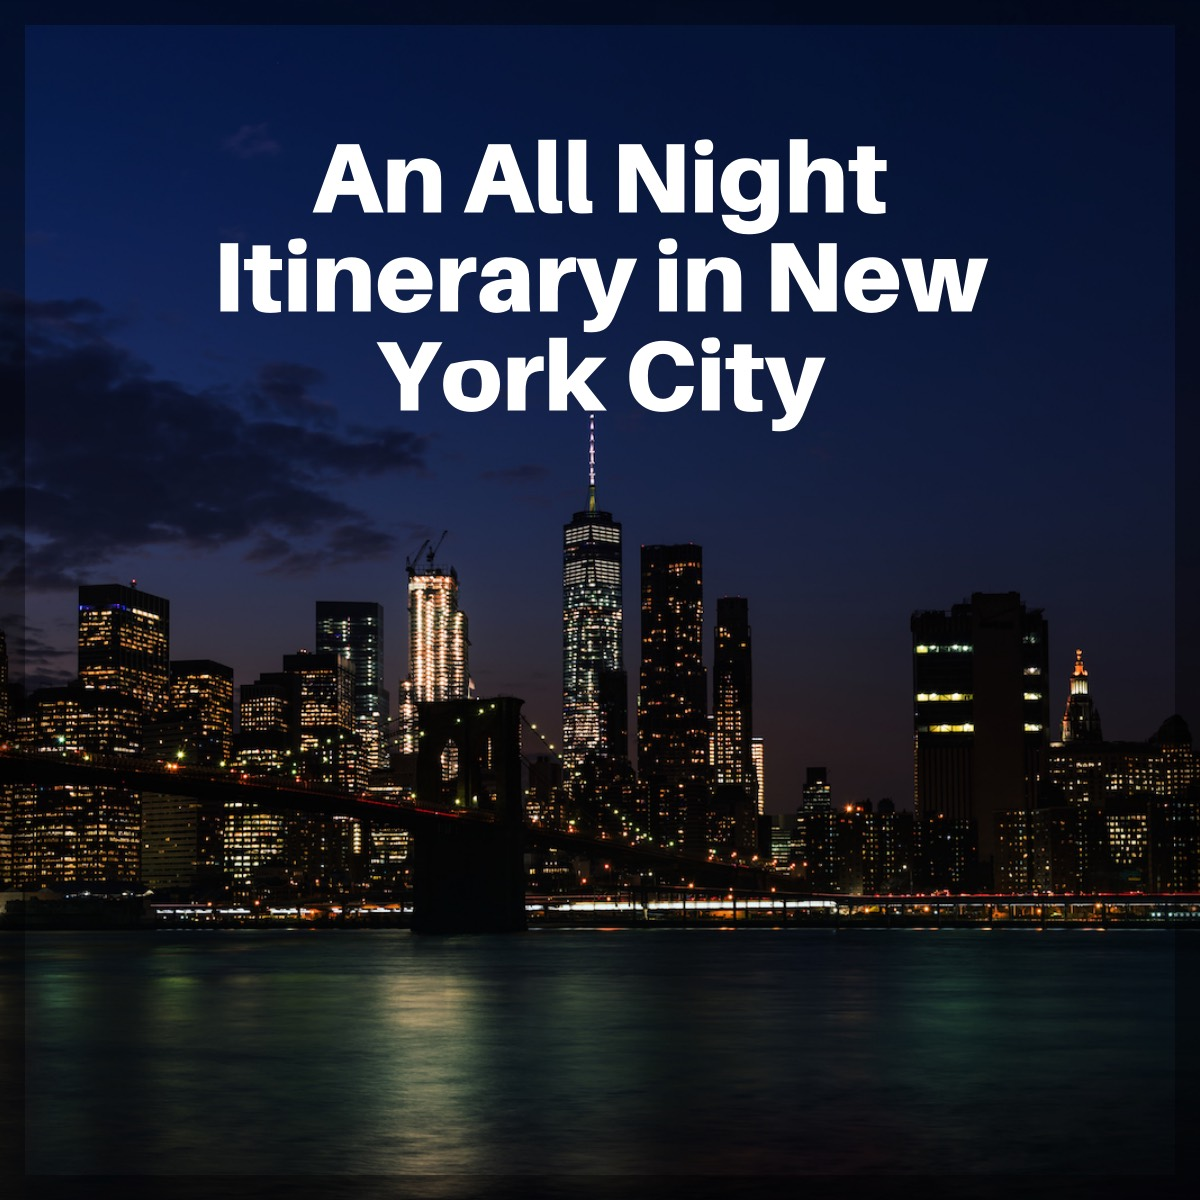 An All Night Itinerary in New York City – The City That Never Sleeps